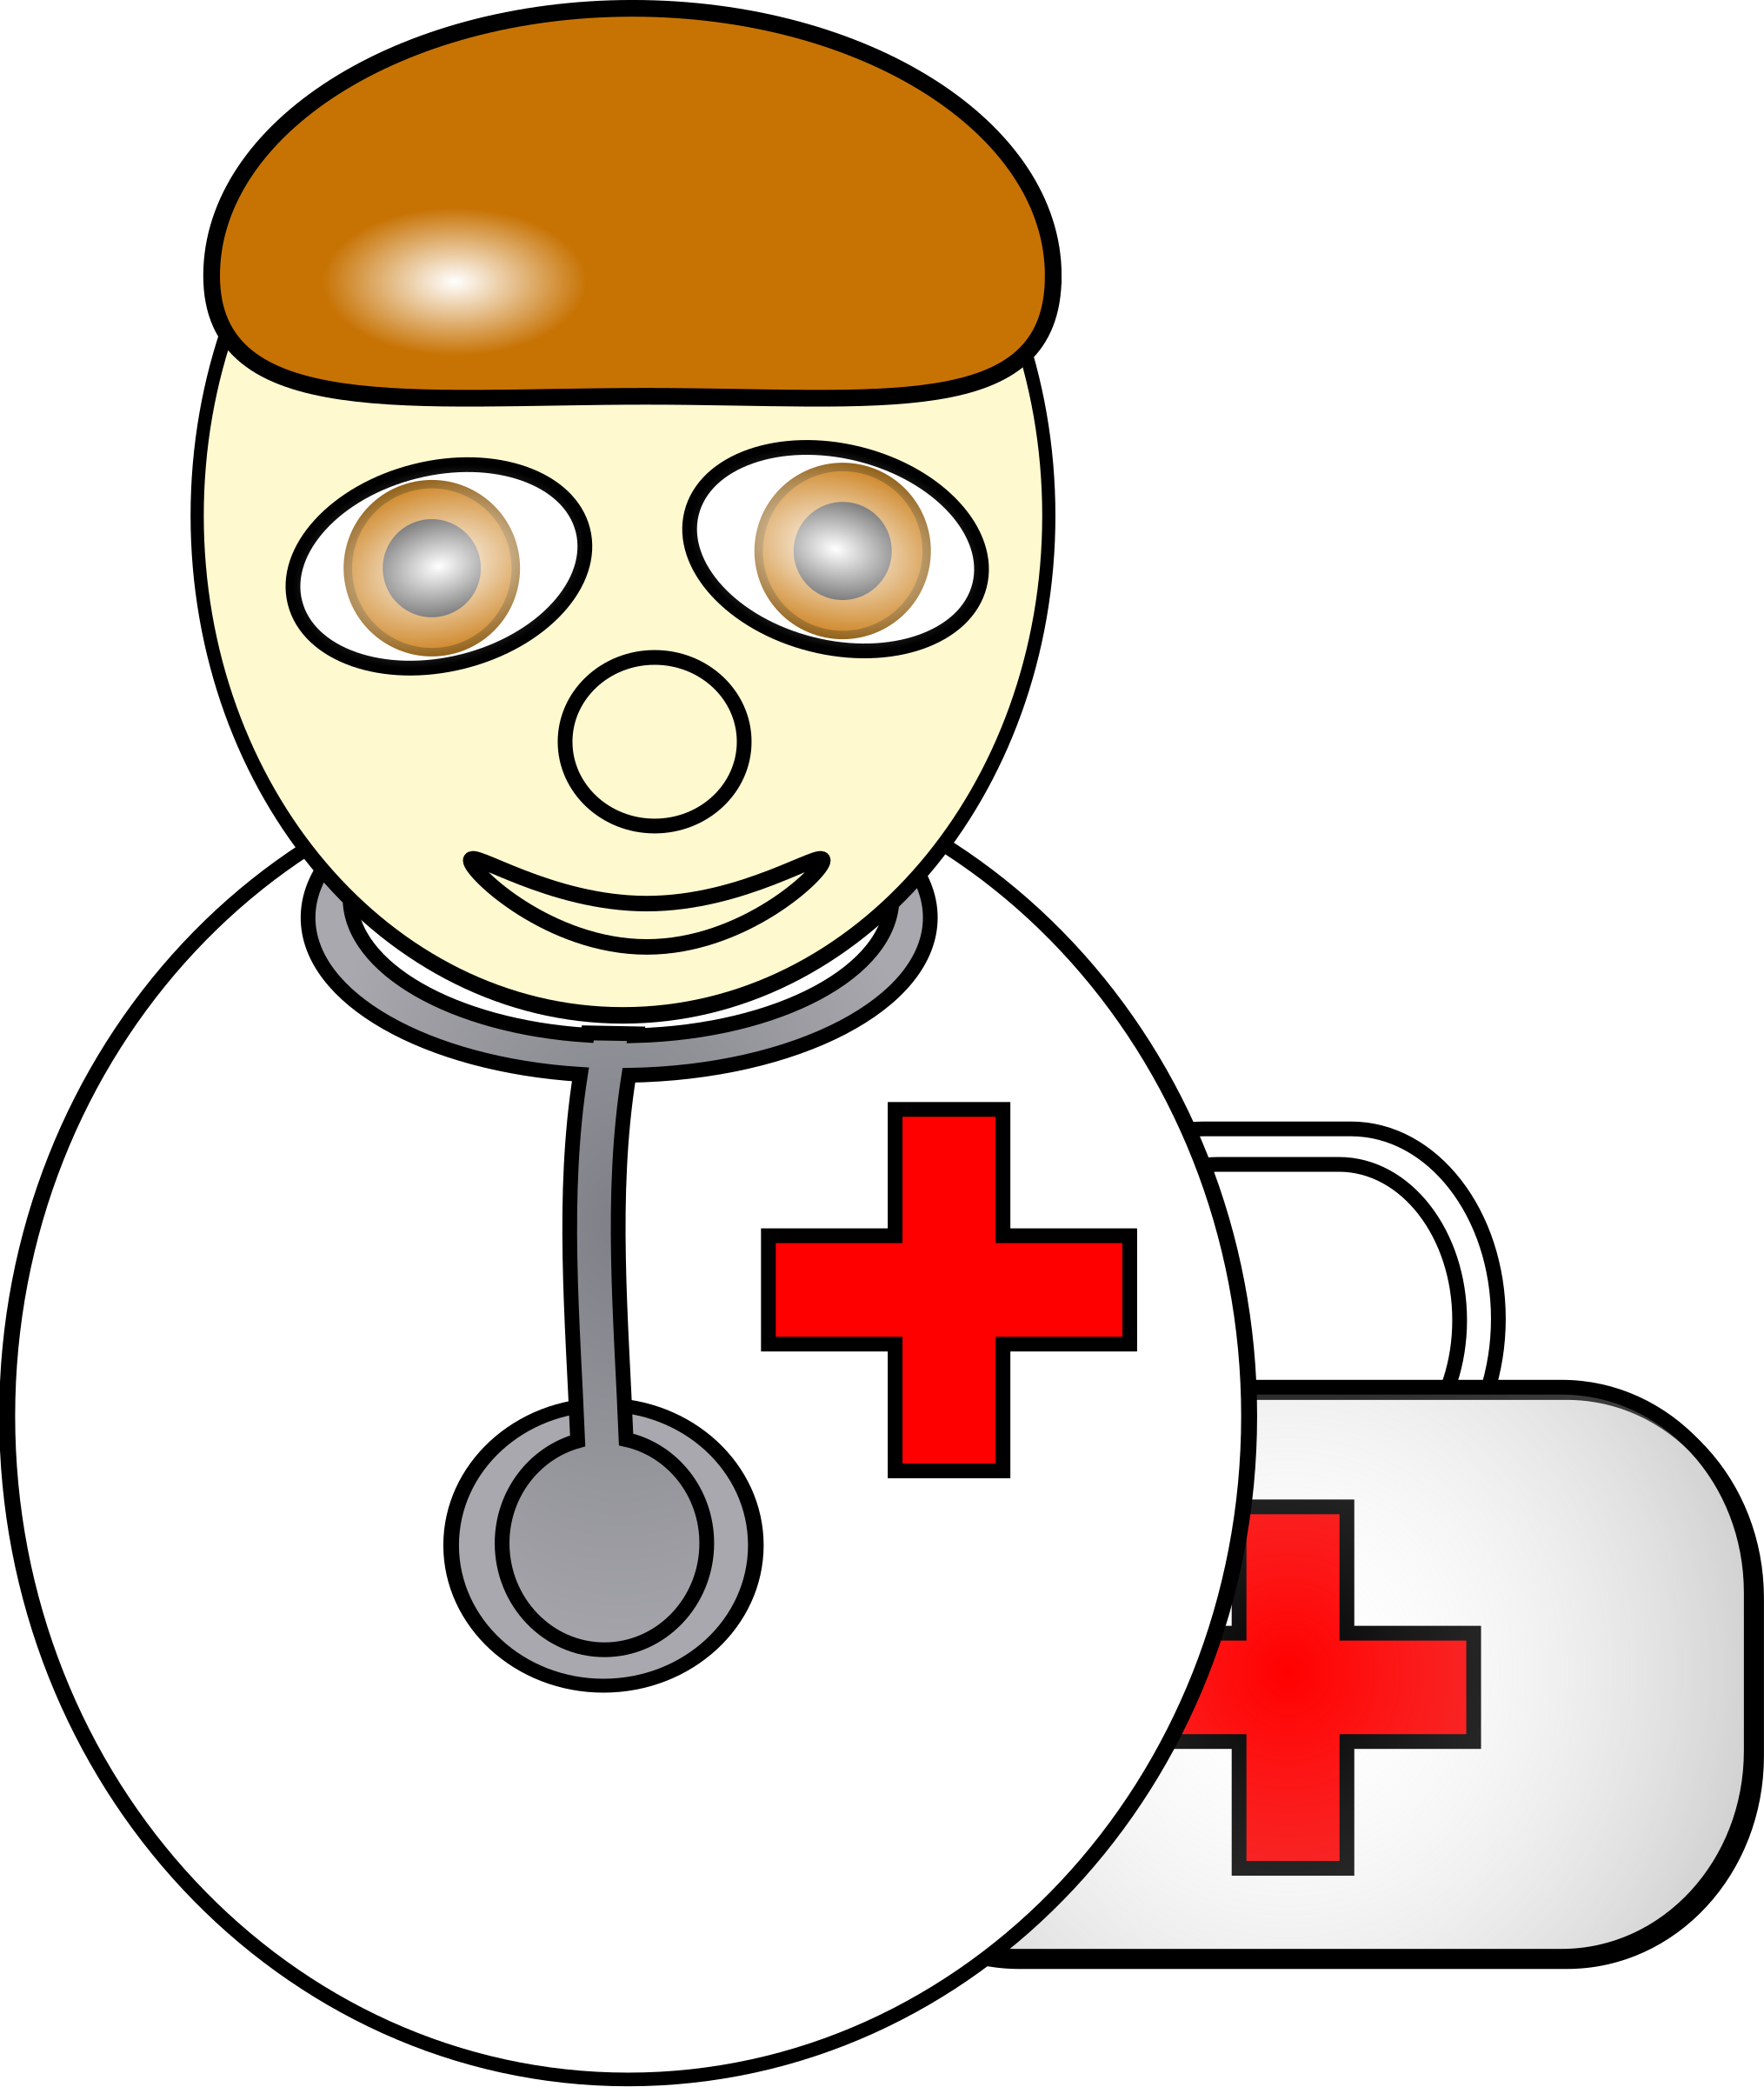 Doctor clipart cute. Kit clip art images